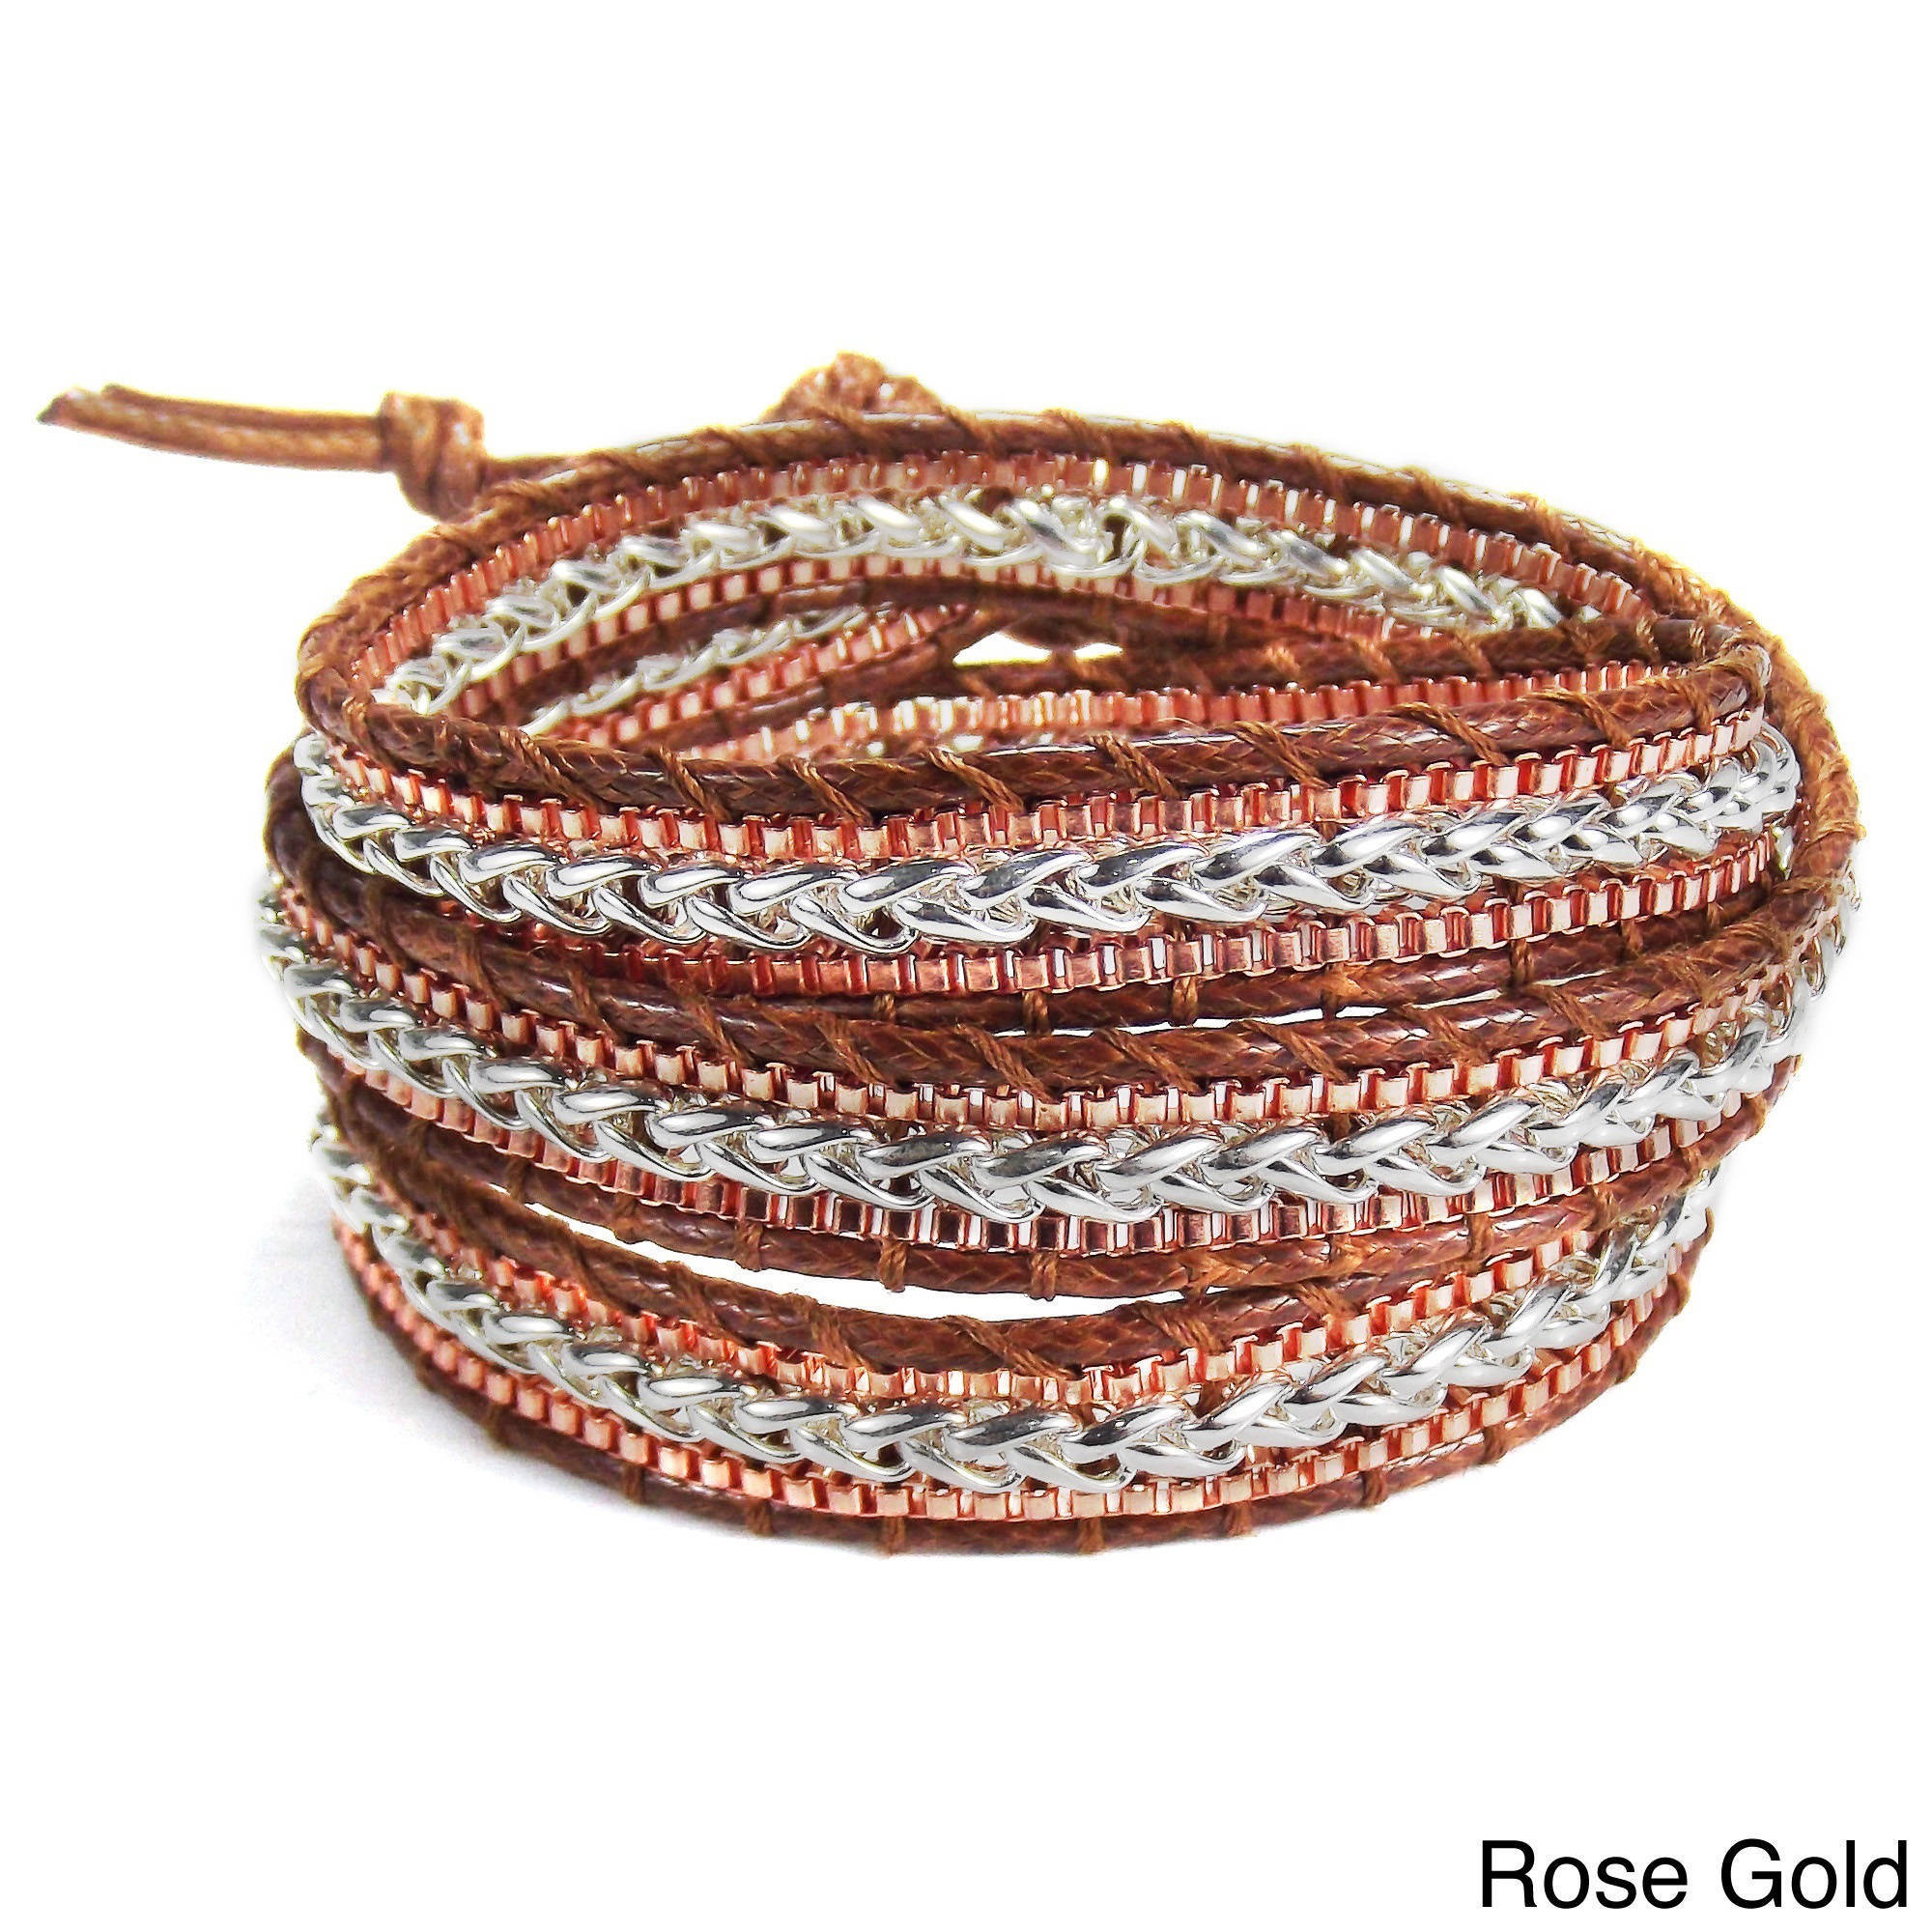 image hues in bracelets a moonstone bracelet triple cream beaded and original products wrap mb collections peach